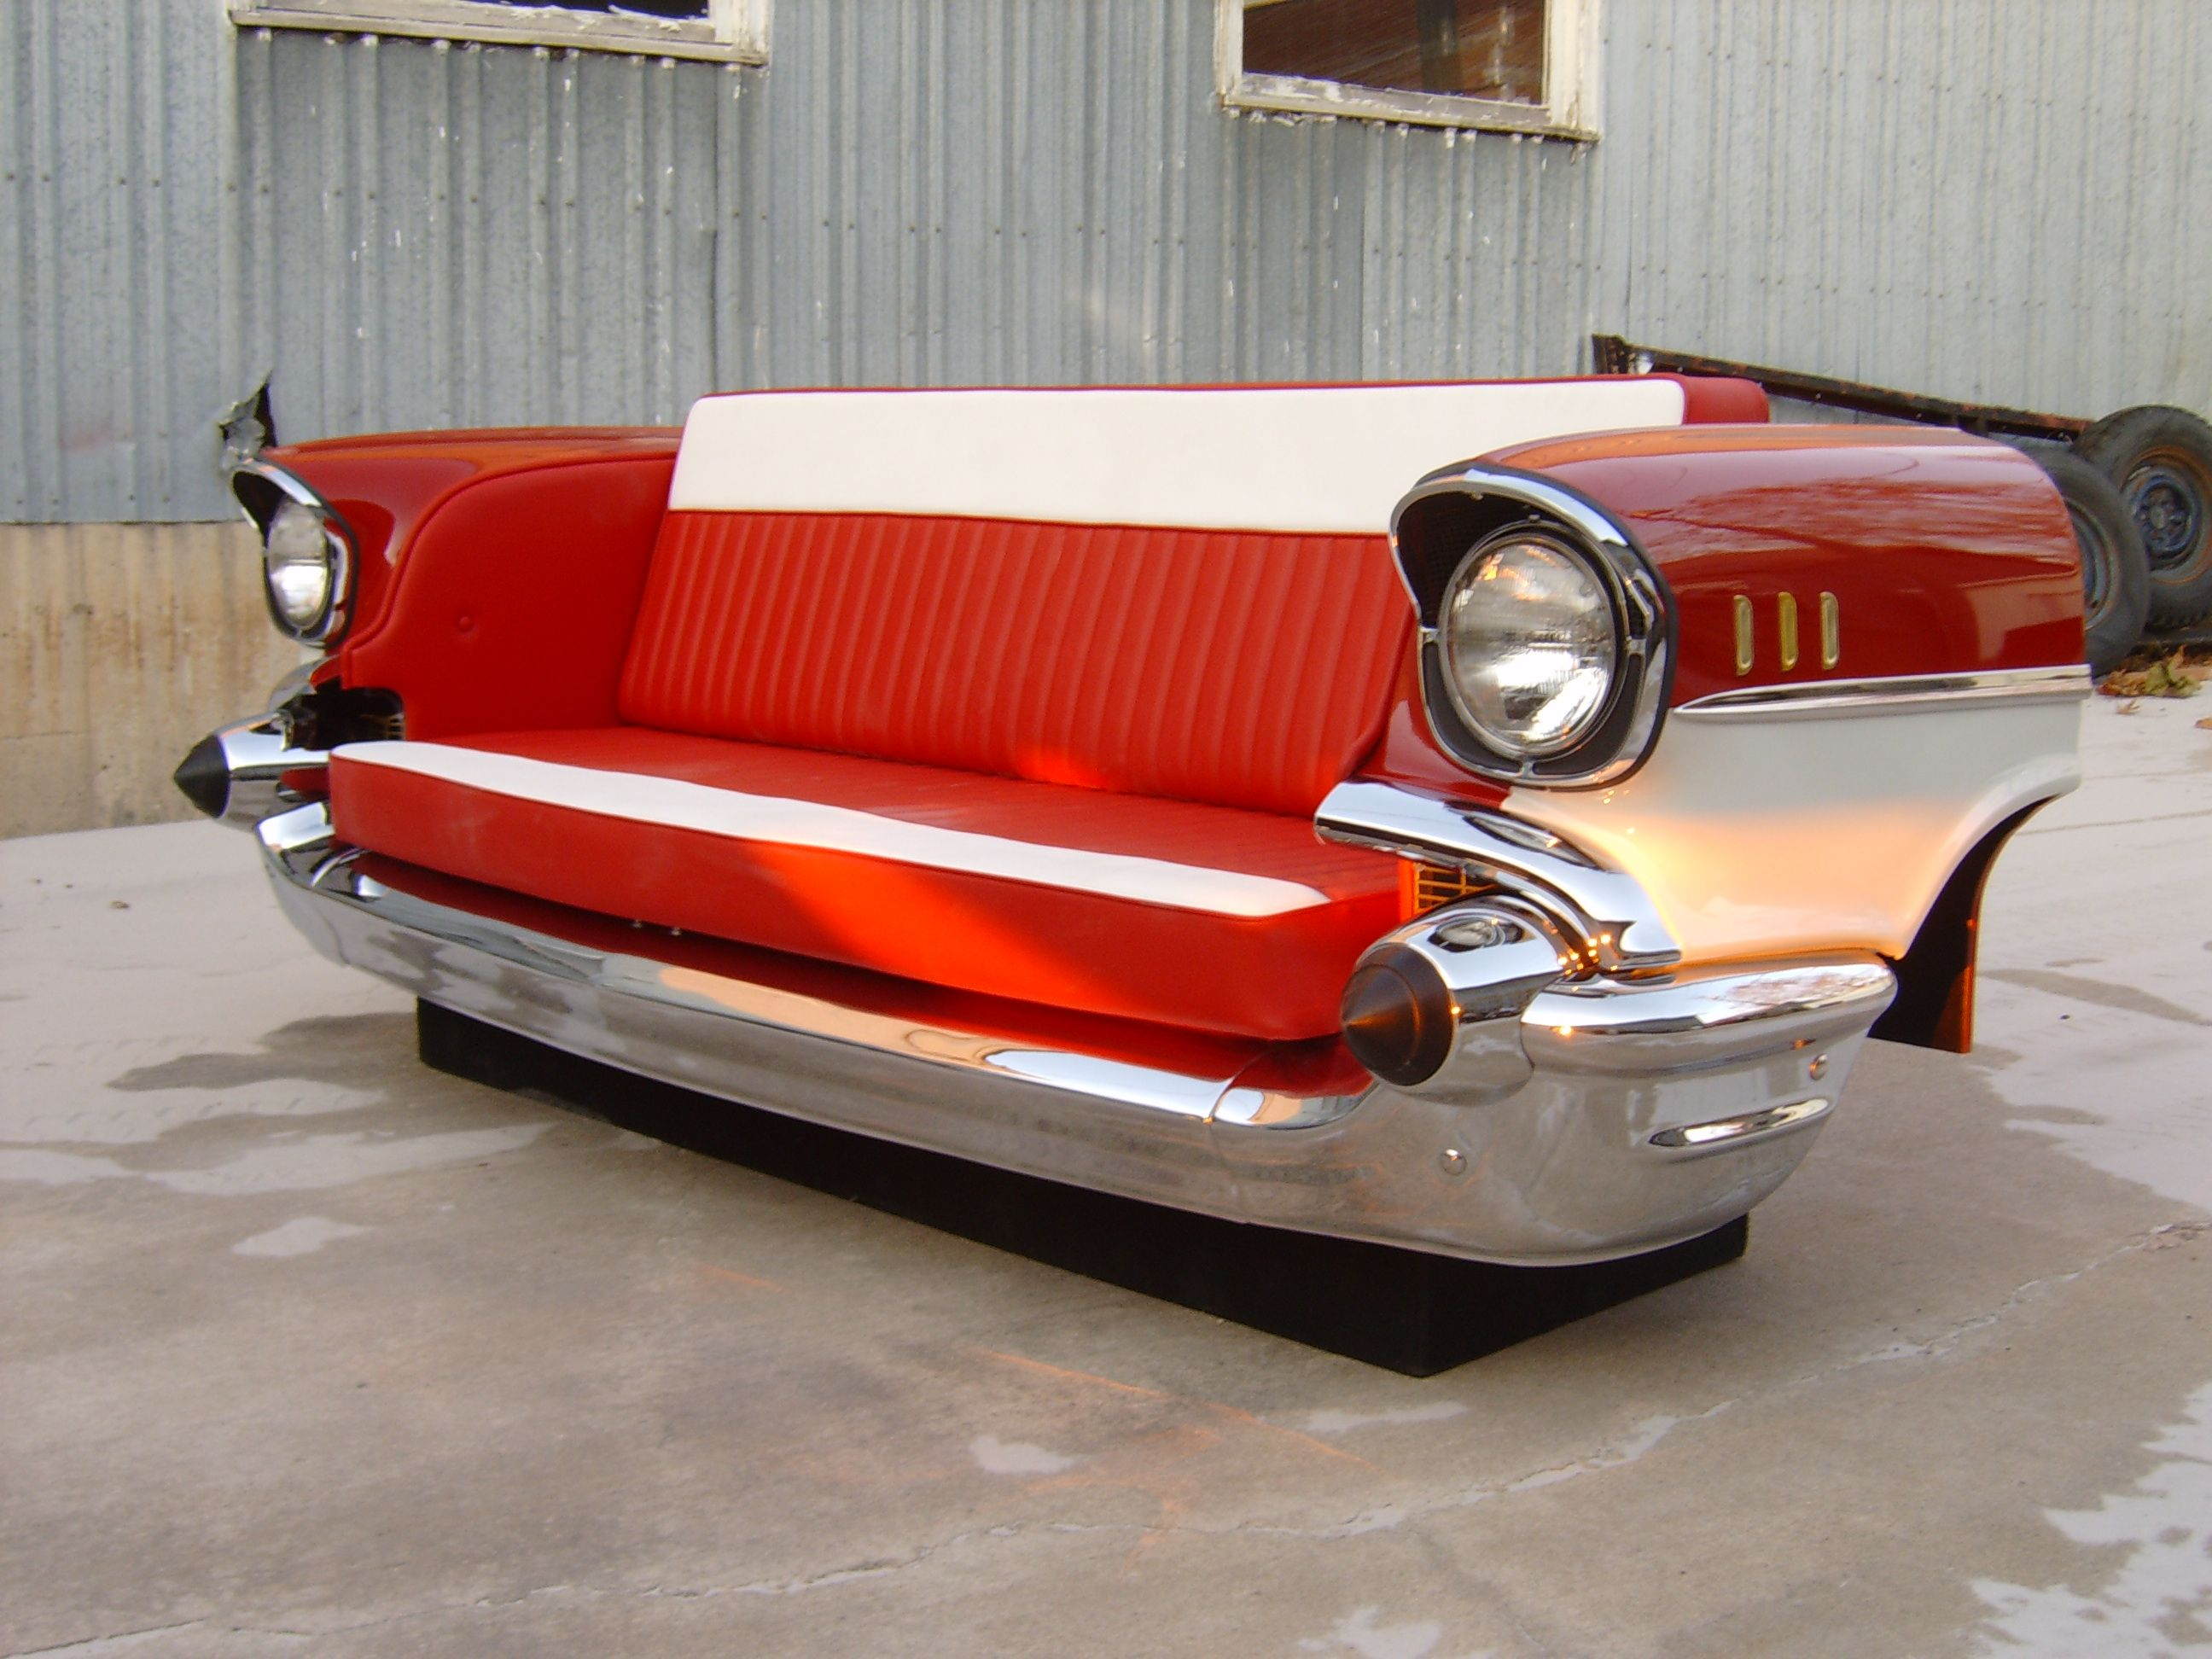 57 Chevy front end couch | Car Themed Stuff | Automotive furniture ...